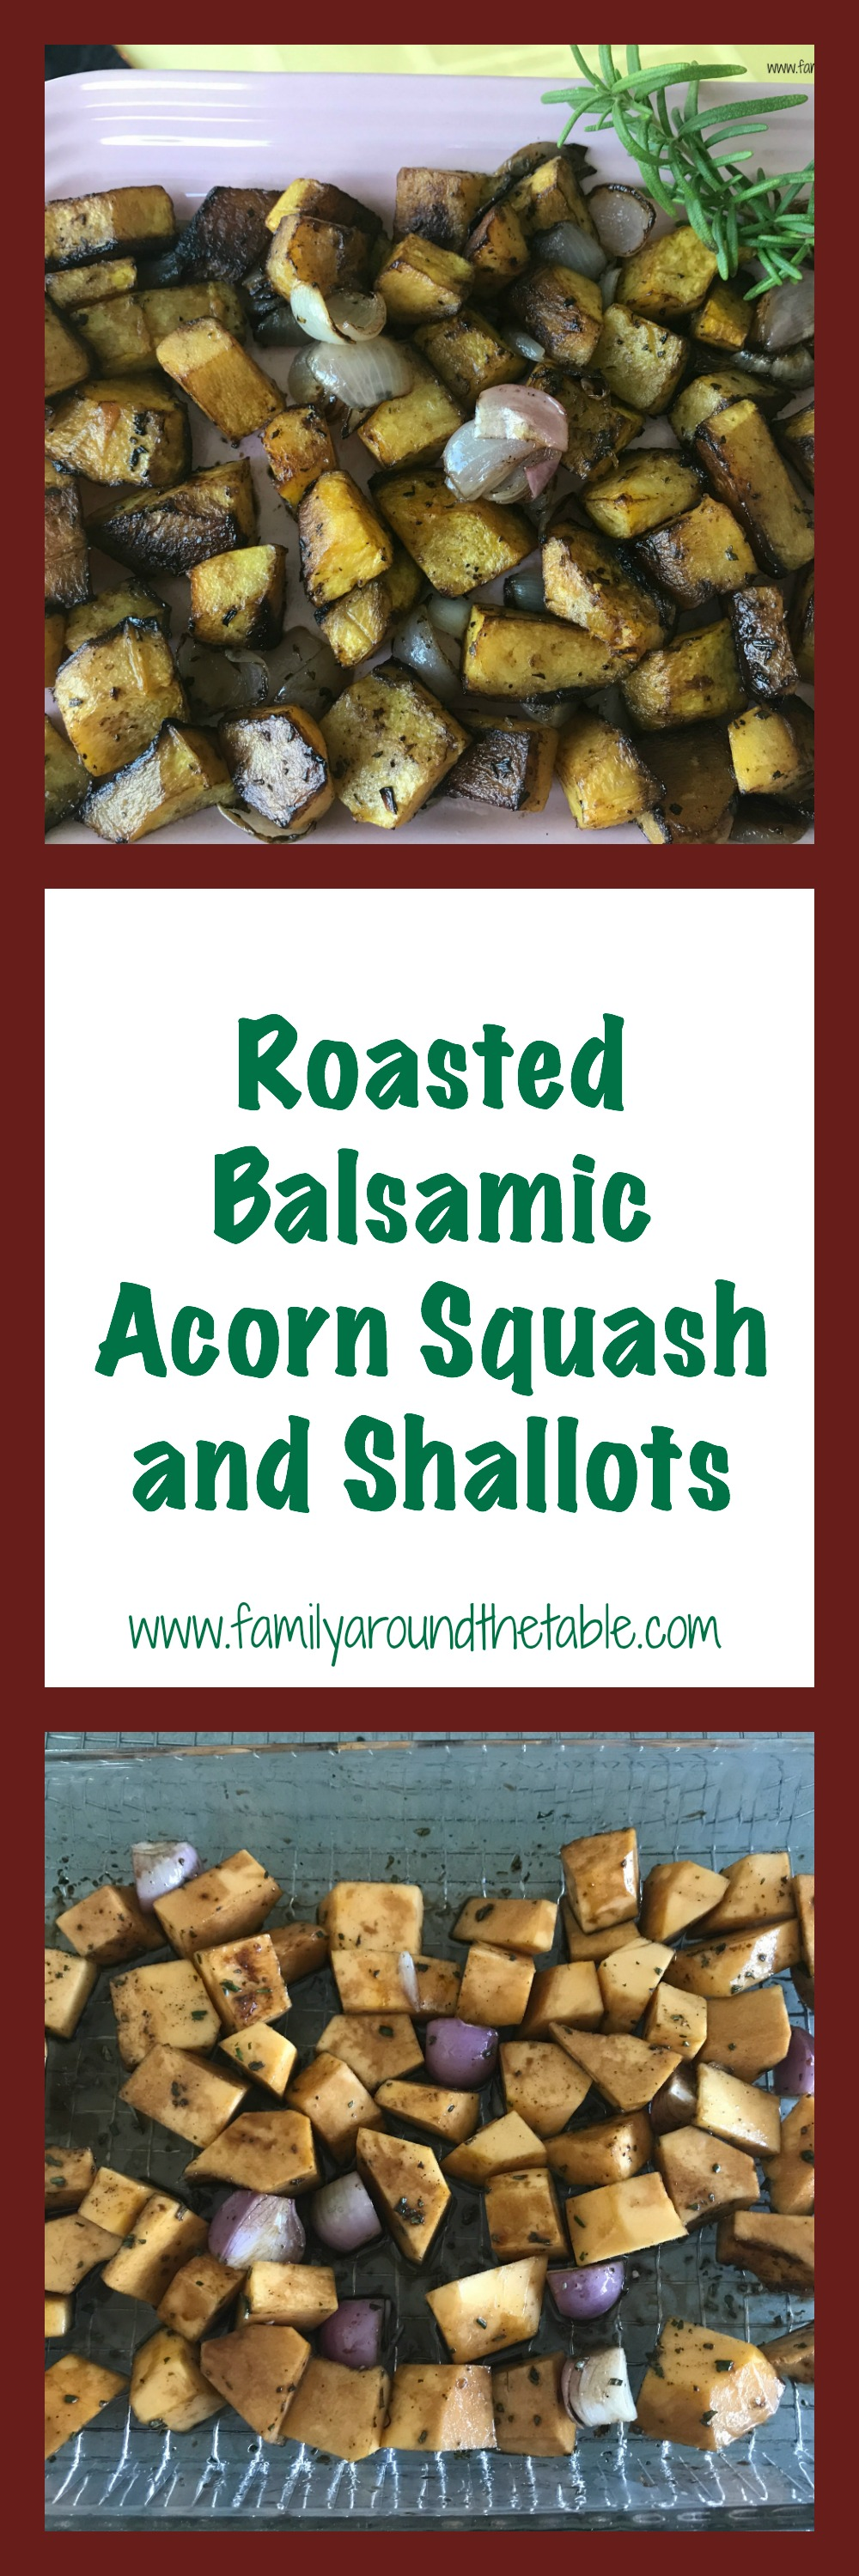 Roasted balsamic acorn squash and shallots makes the best of fall produce.